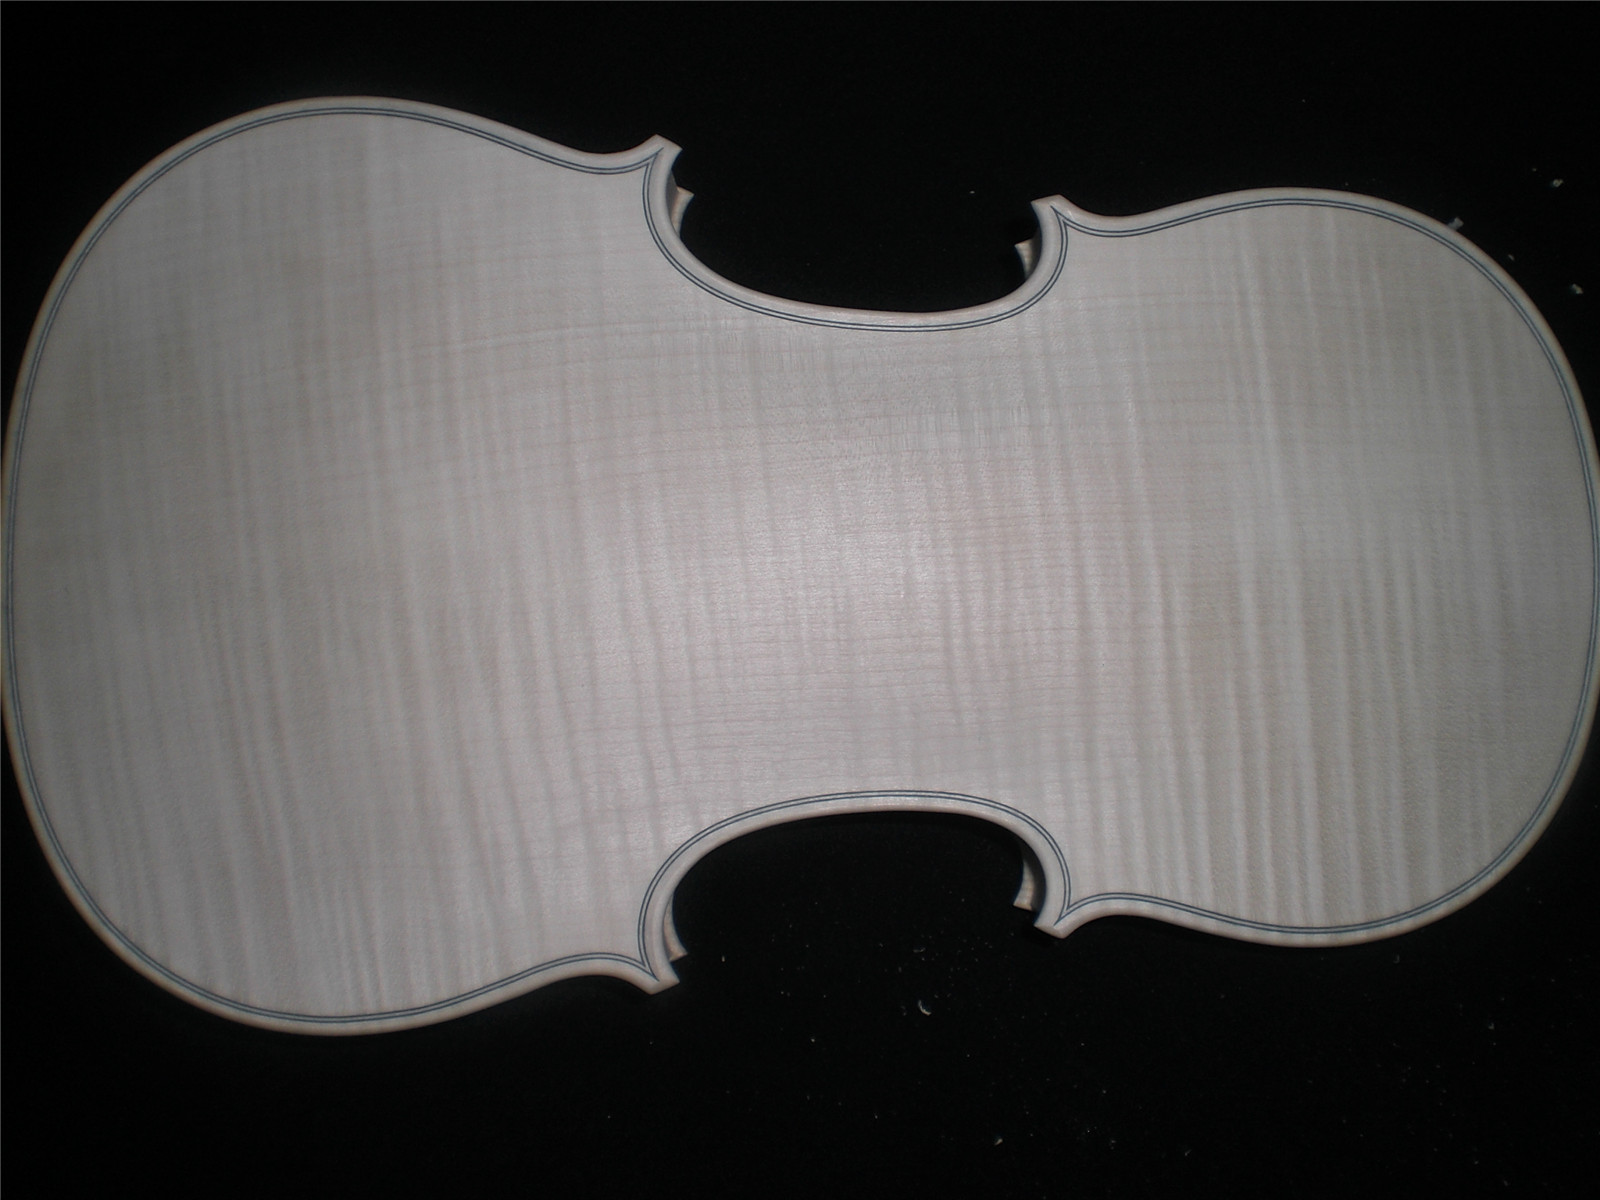 1 PC Professional White Violin with One Piece Maple Back Spruce Top European Wood 4/4 Quality Unfinished Violin Full Size 2016 lace appliques baby boys girls infant outfit heriloom dress dedication baptism gown long christening gowns with bonnet